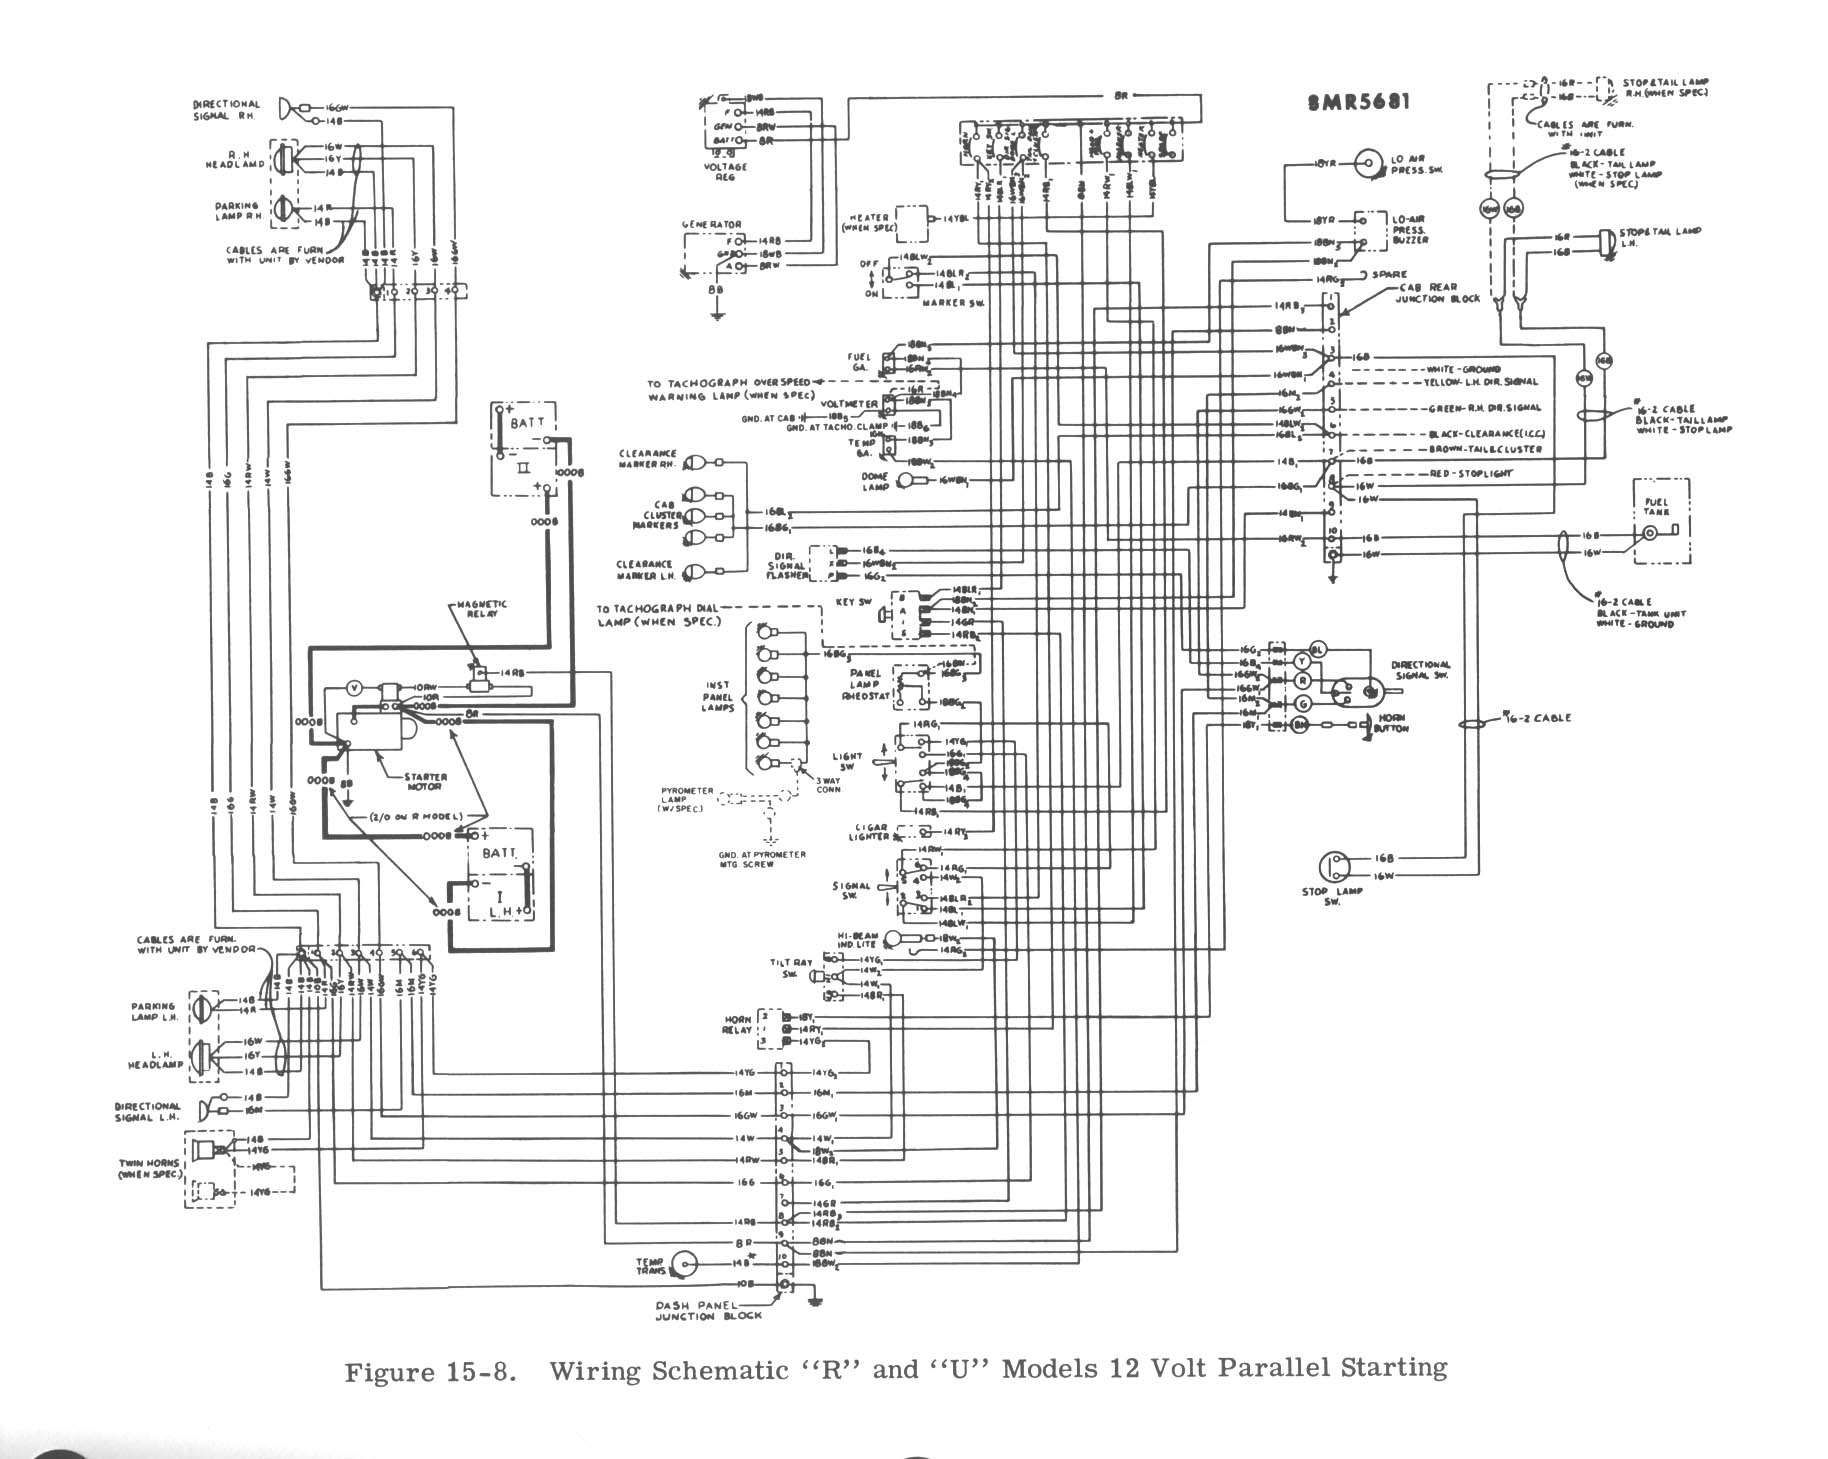 Mack Truck Wiring Schematic Wiring Diagram Local A Local A Maceratadoc It